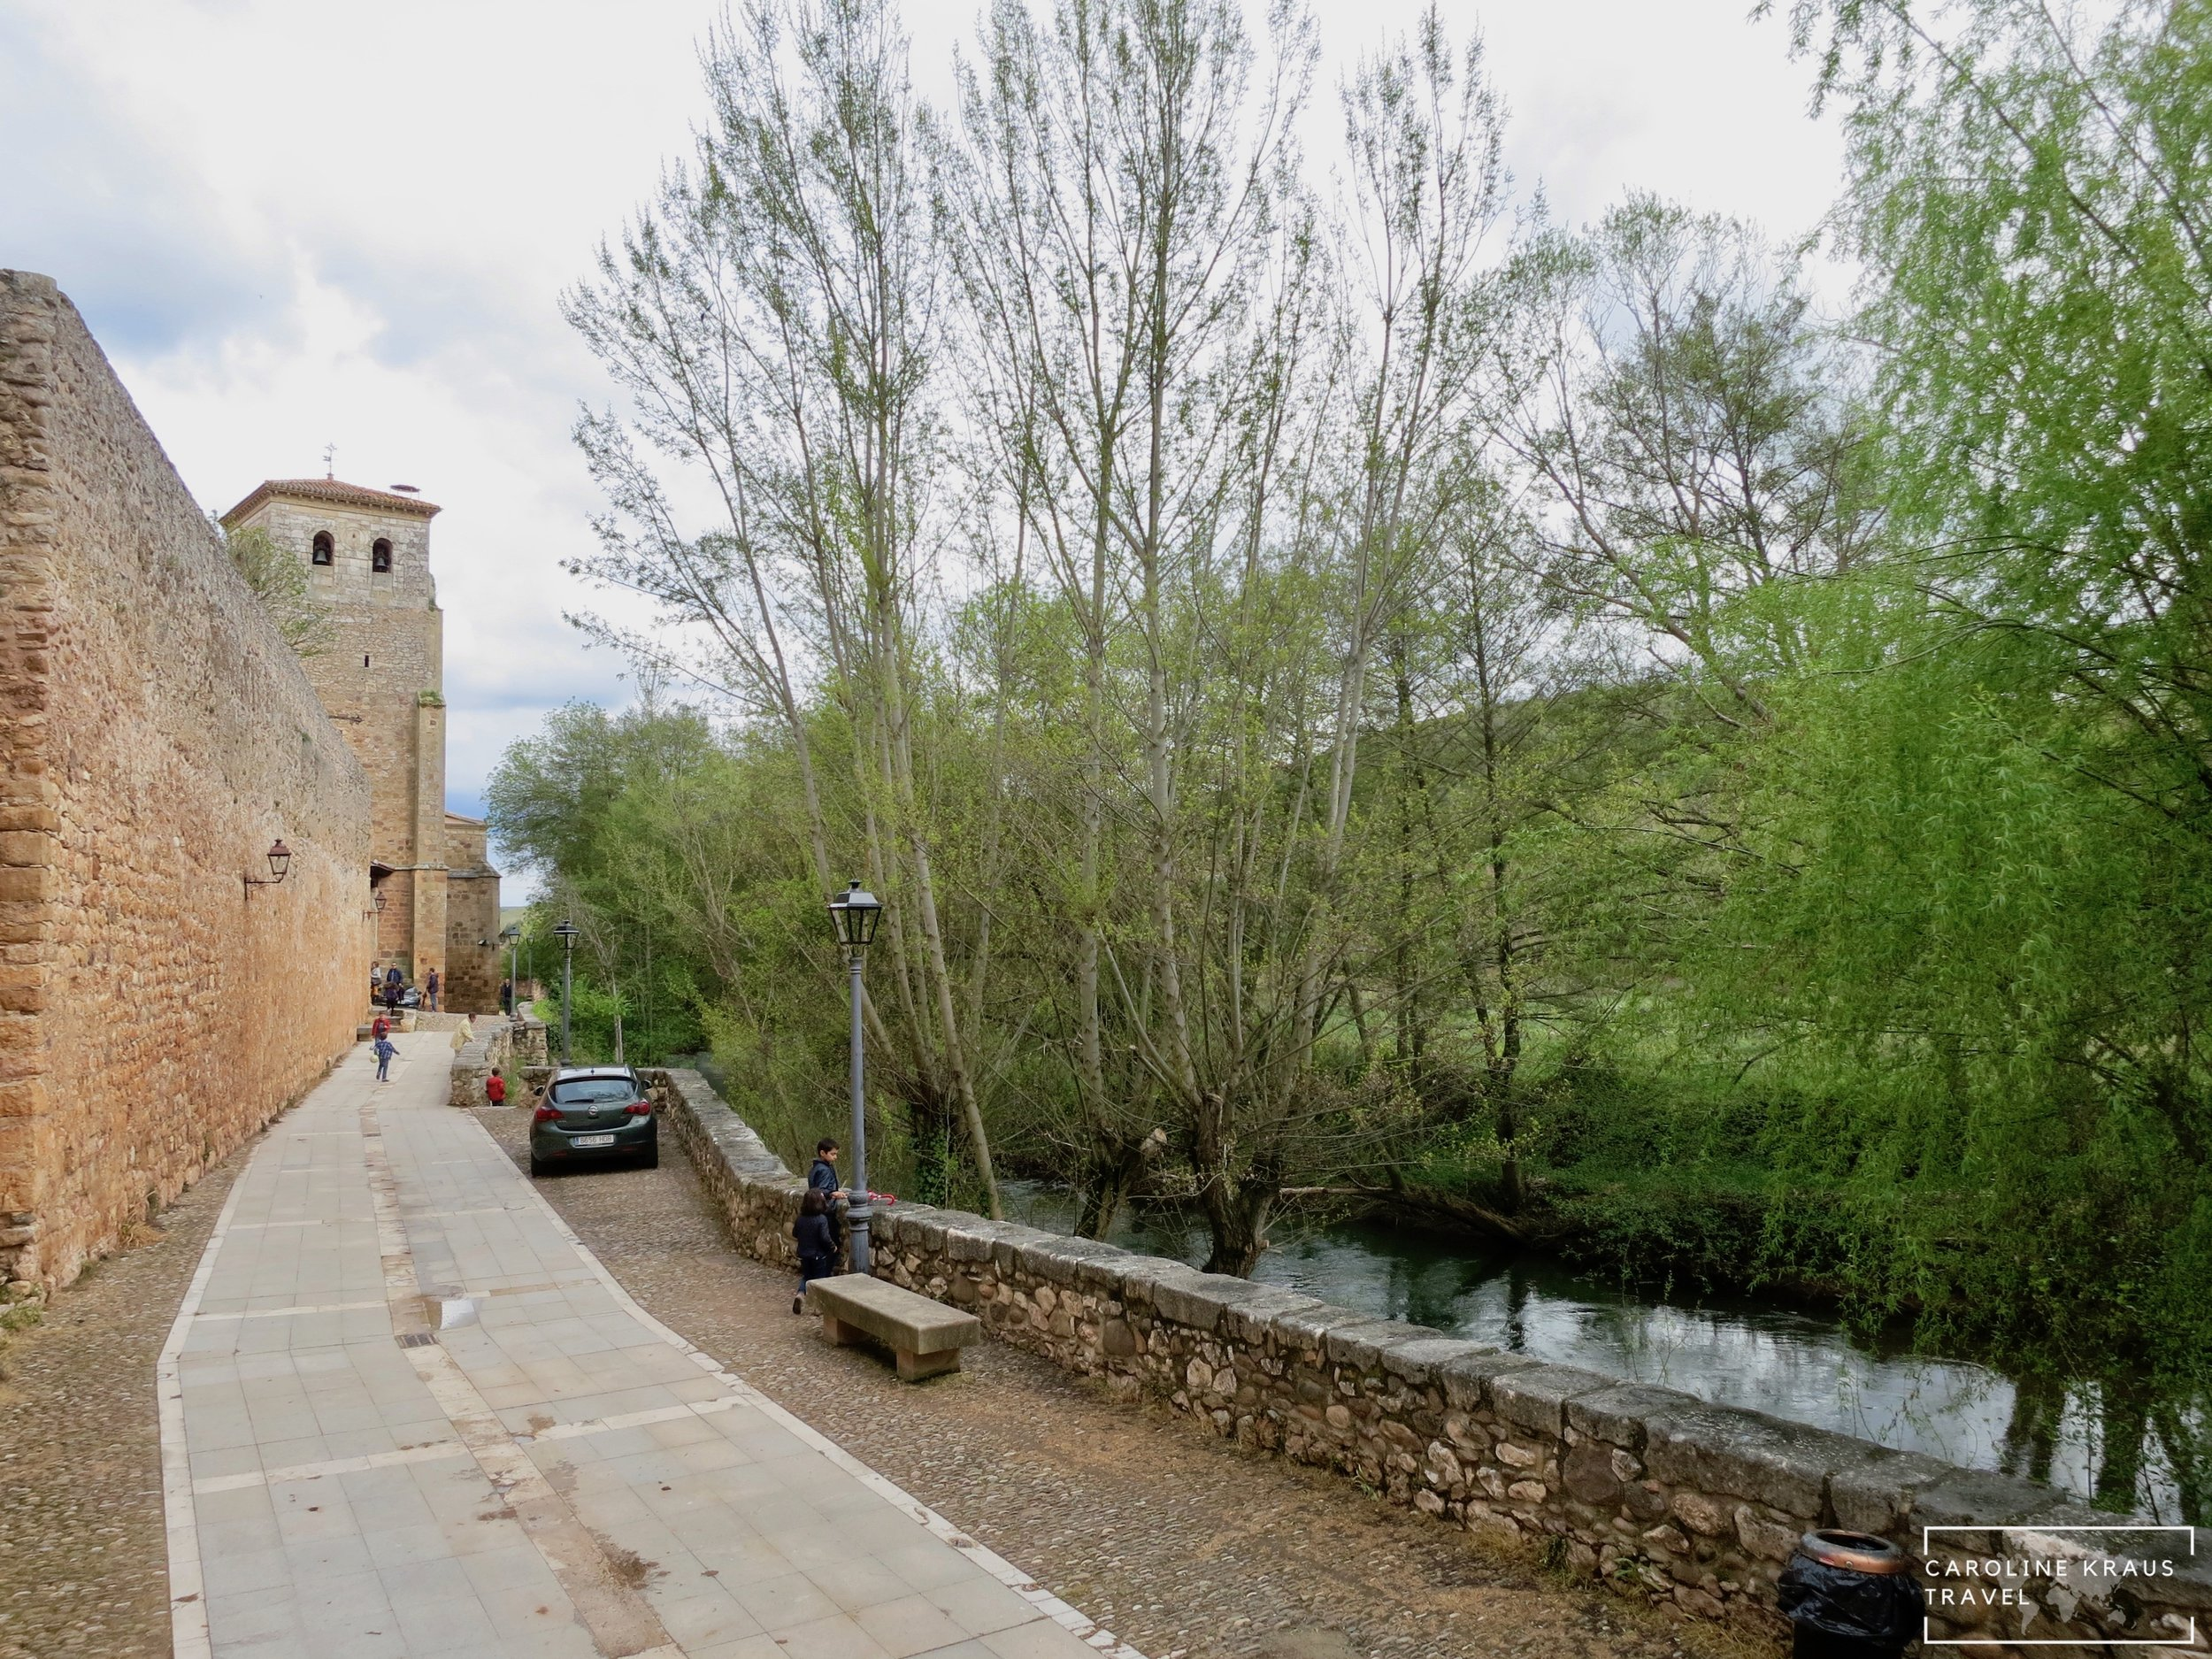 The Arlanza River in Covarrubias, Spain